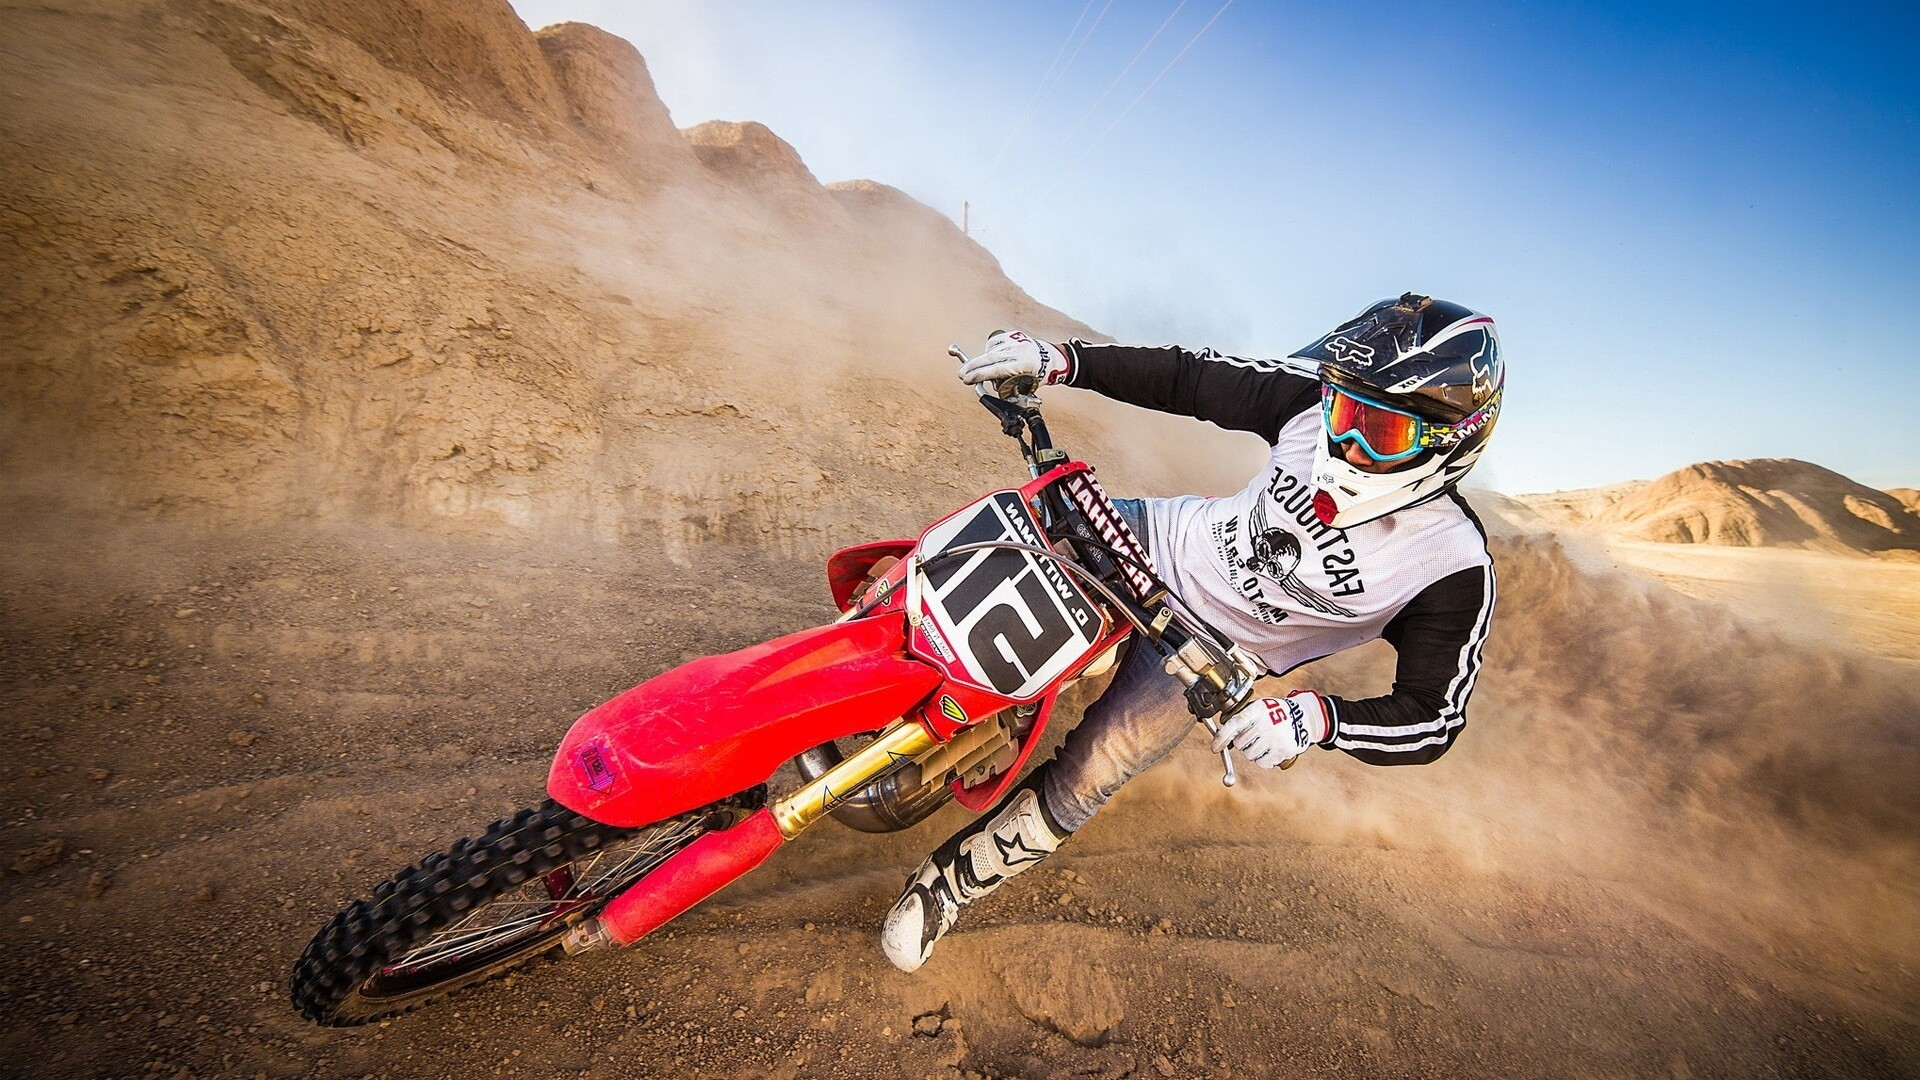 Dirt Bike Picture